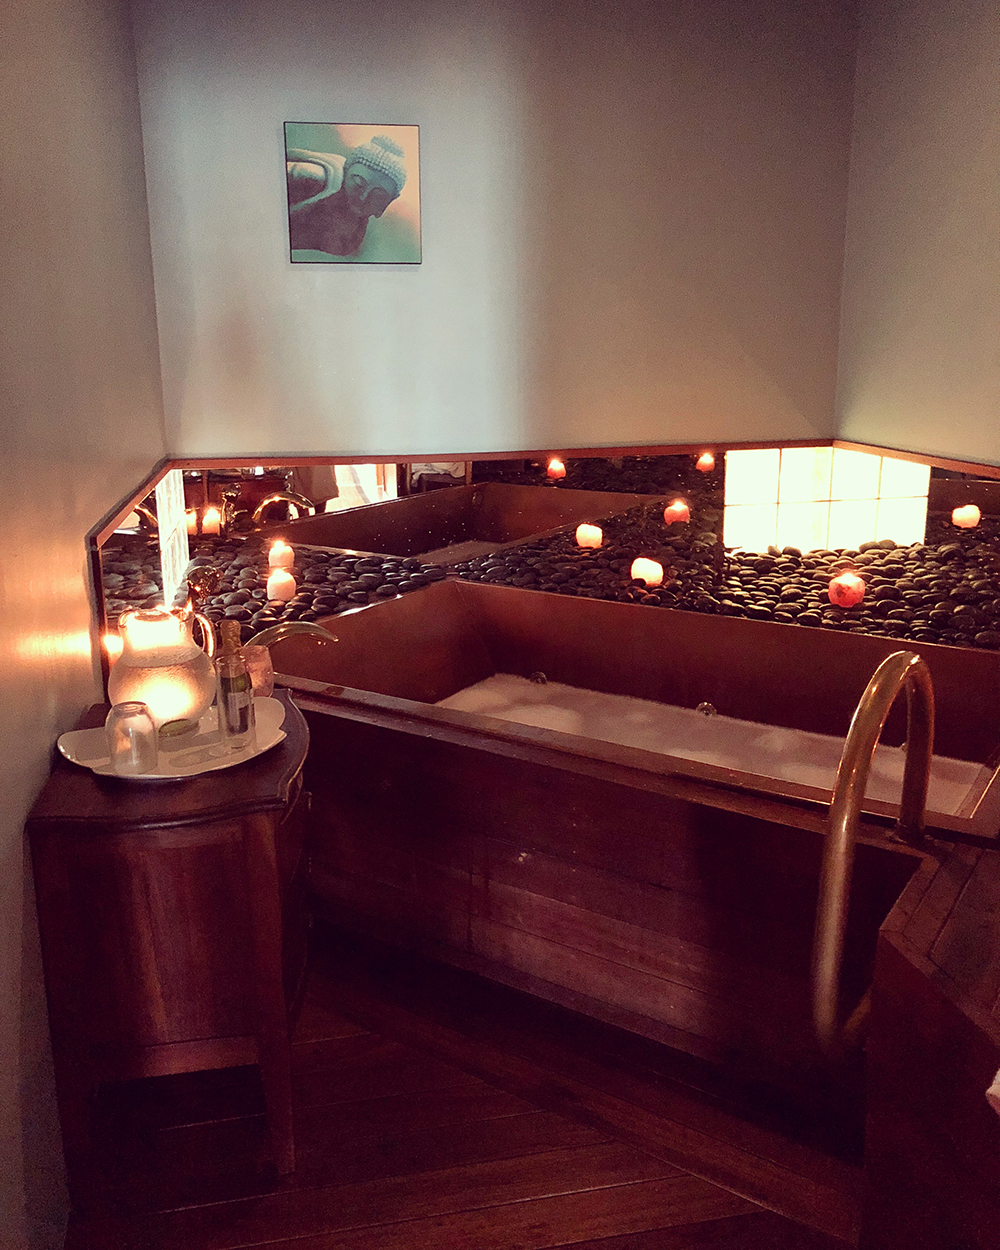 The spa's copper bathtub offers guests a variety of luxurious bath experiences to choose from.